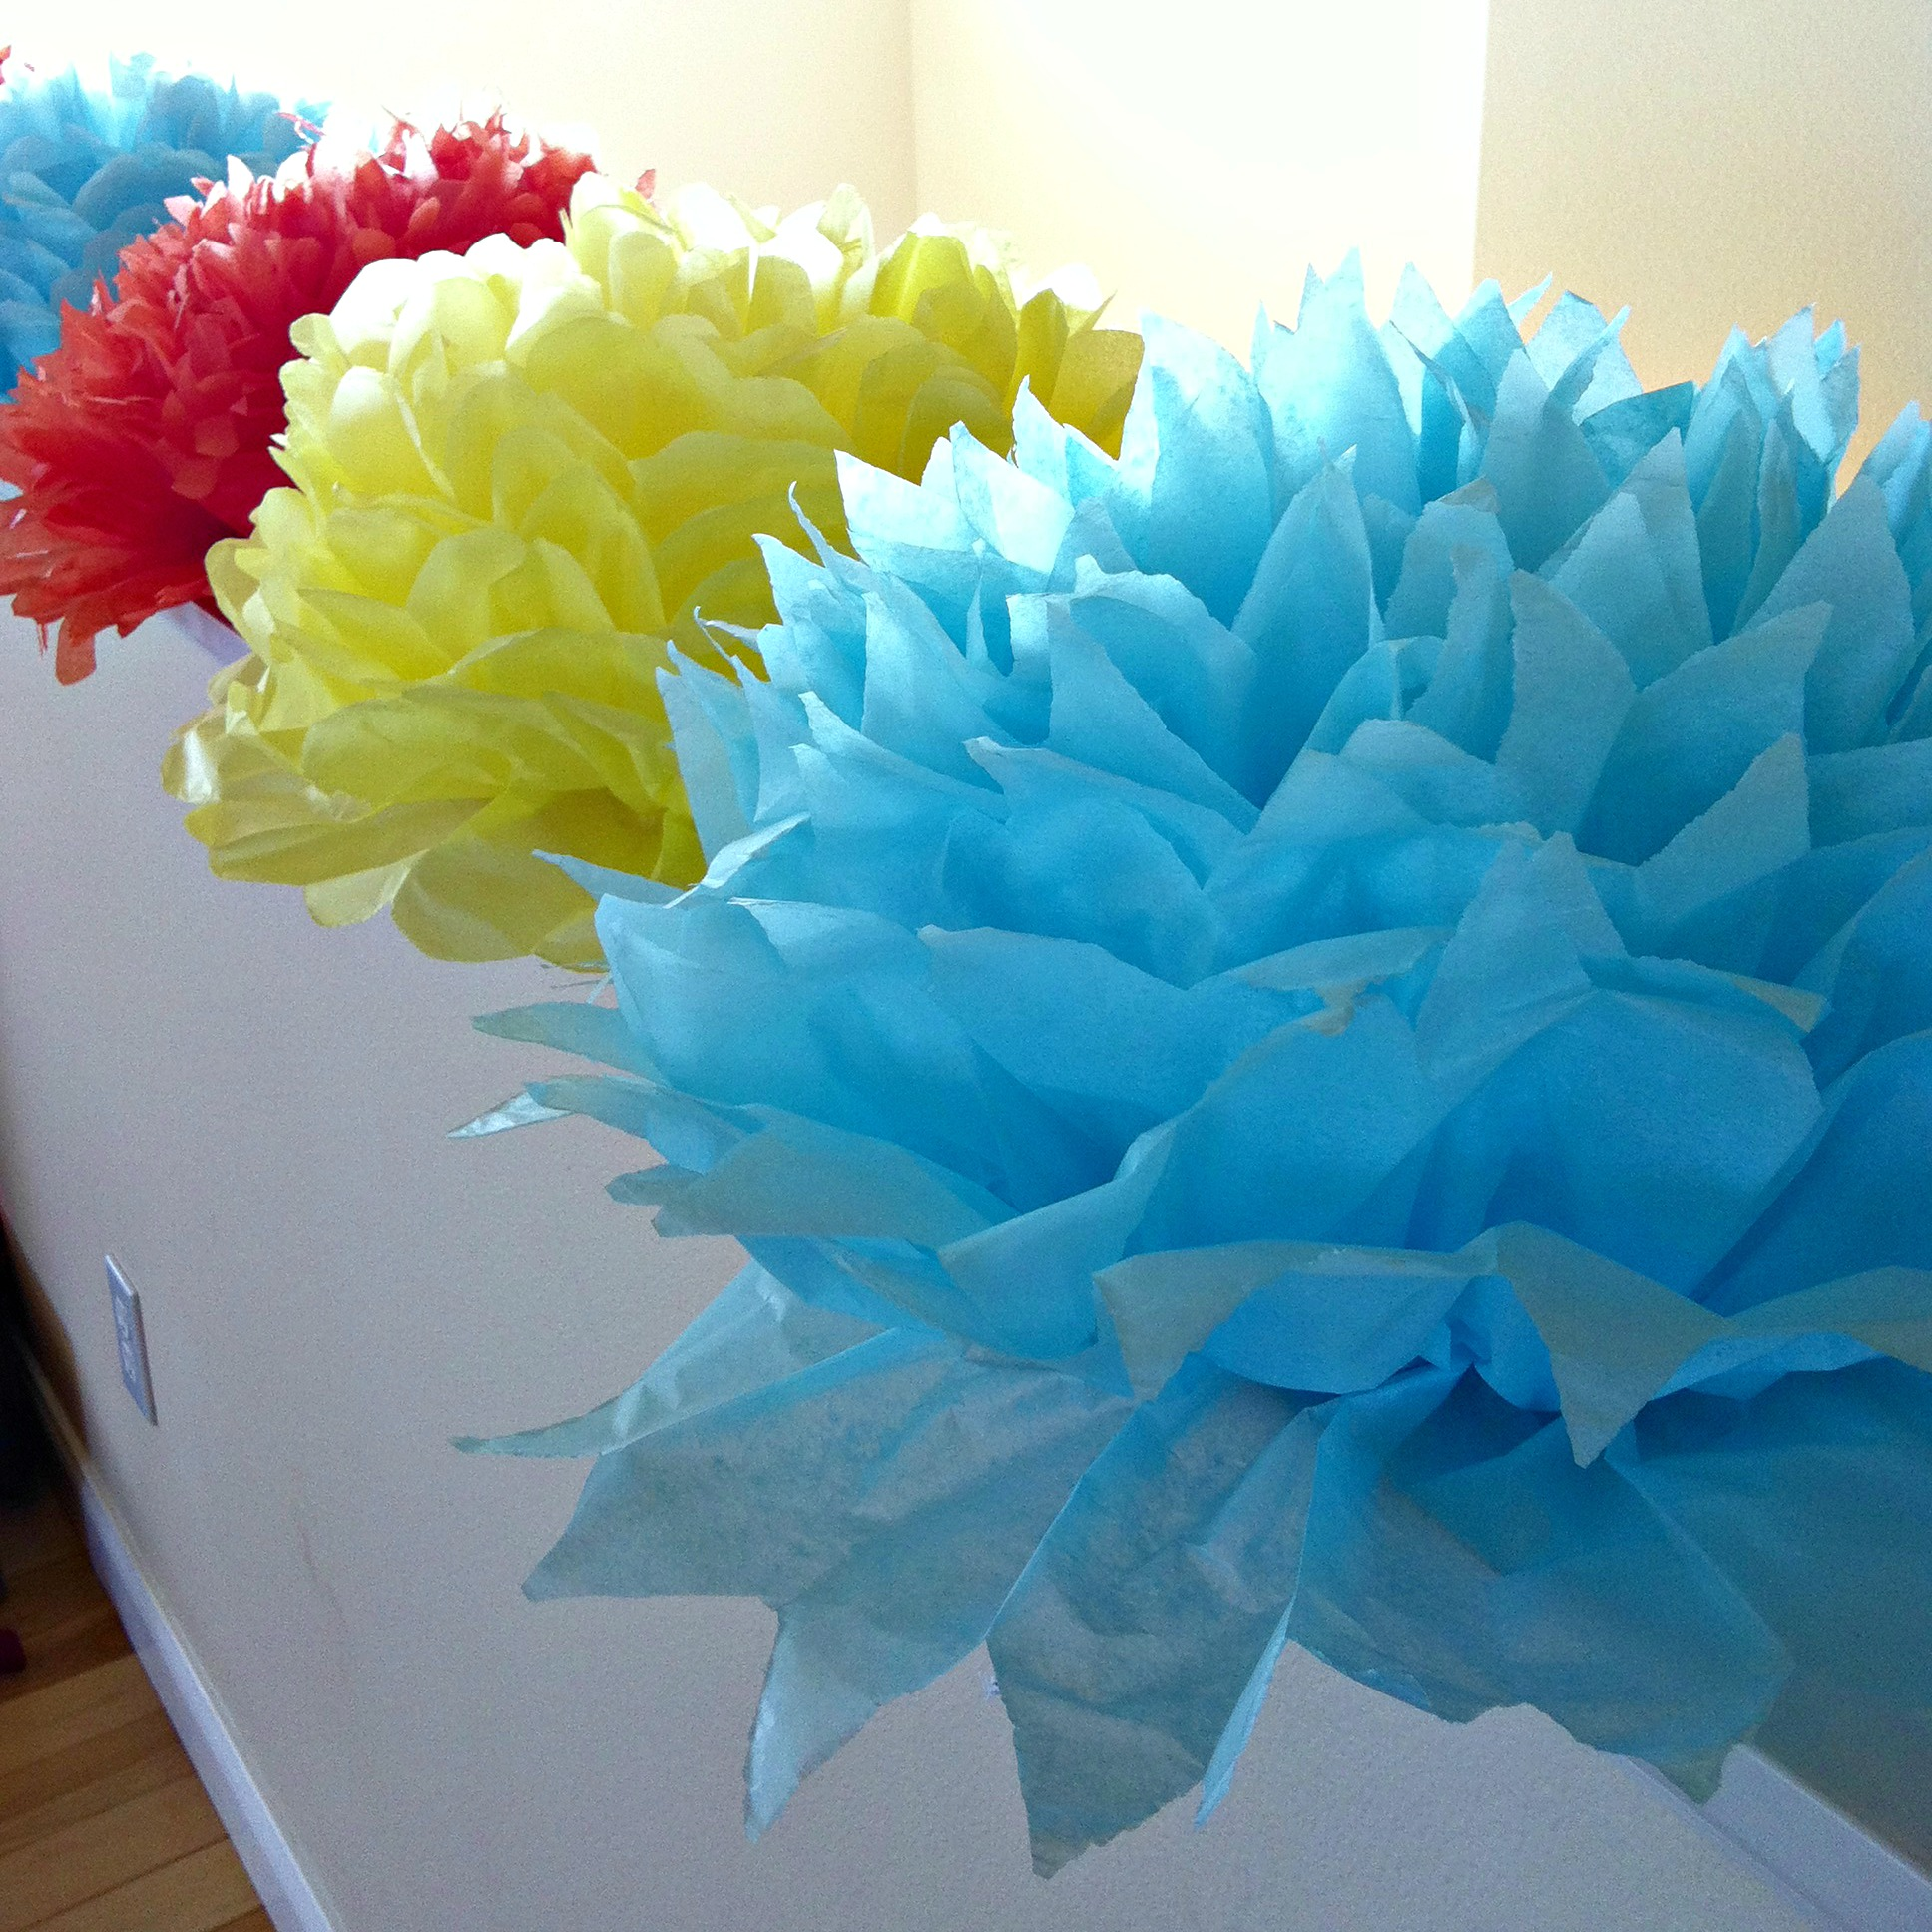 Tutorial how to make diy giant tissue paper flowers hello diy giant handmade tissue paper flowers tutorial 2 for 100 make beautiful birthday party decorations final mightylinksfo